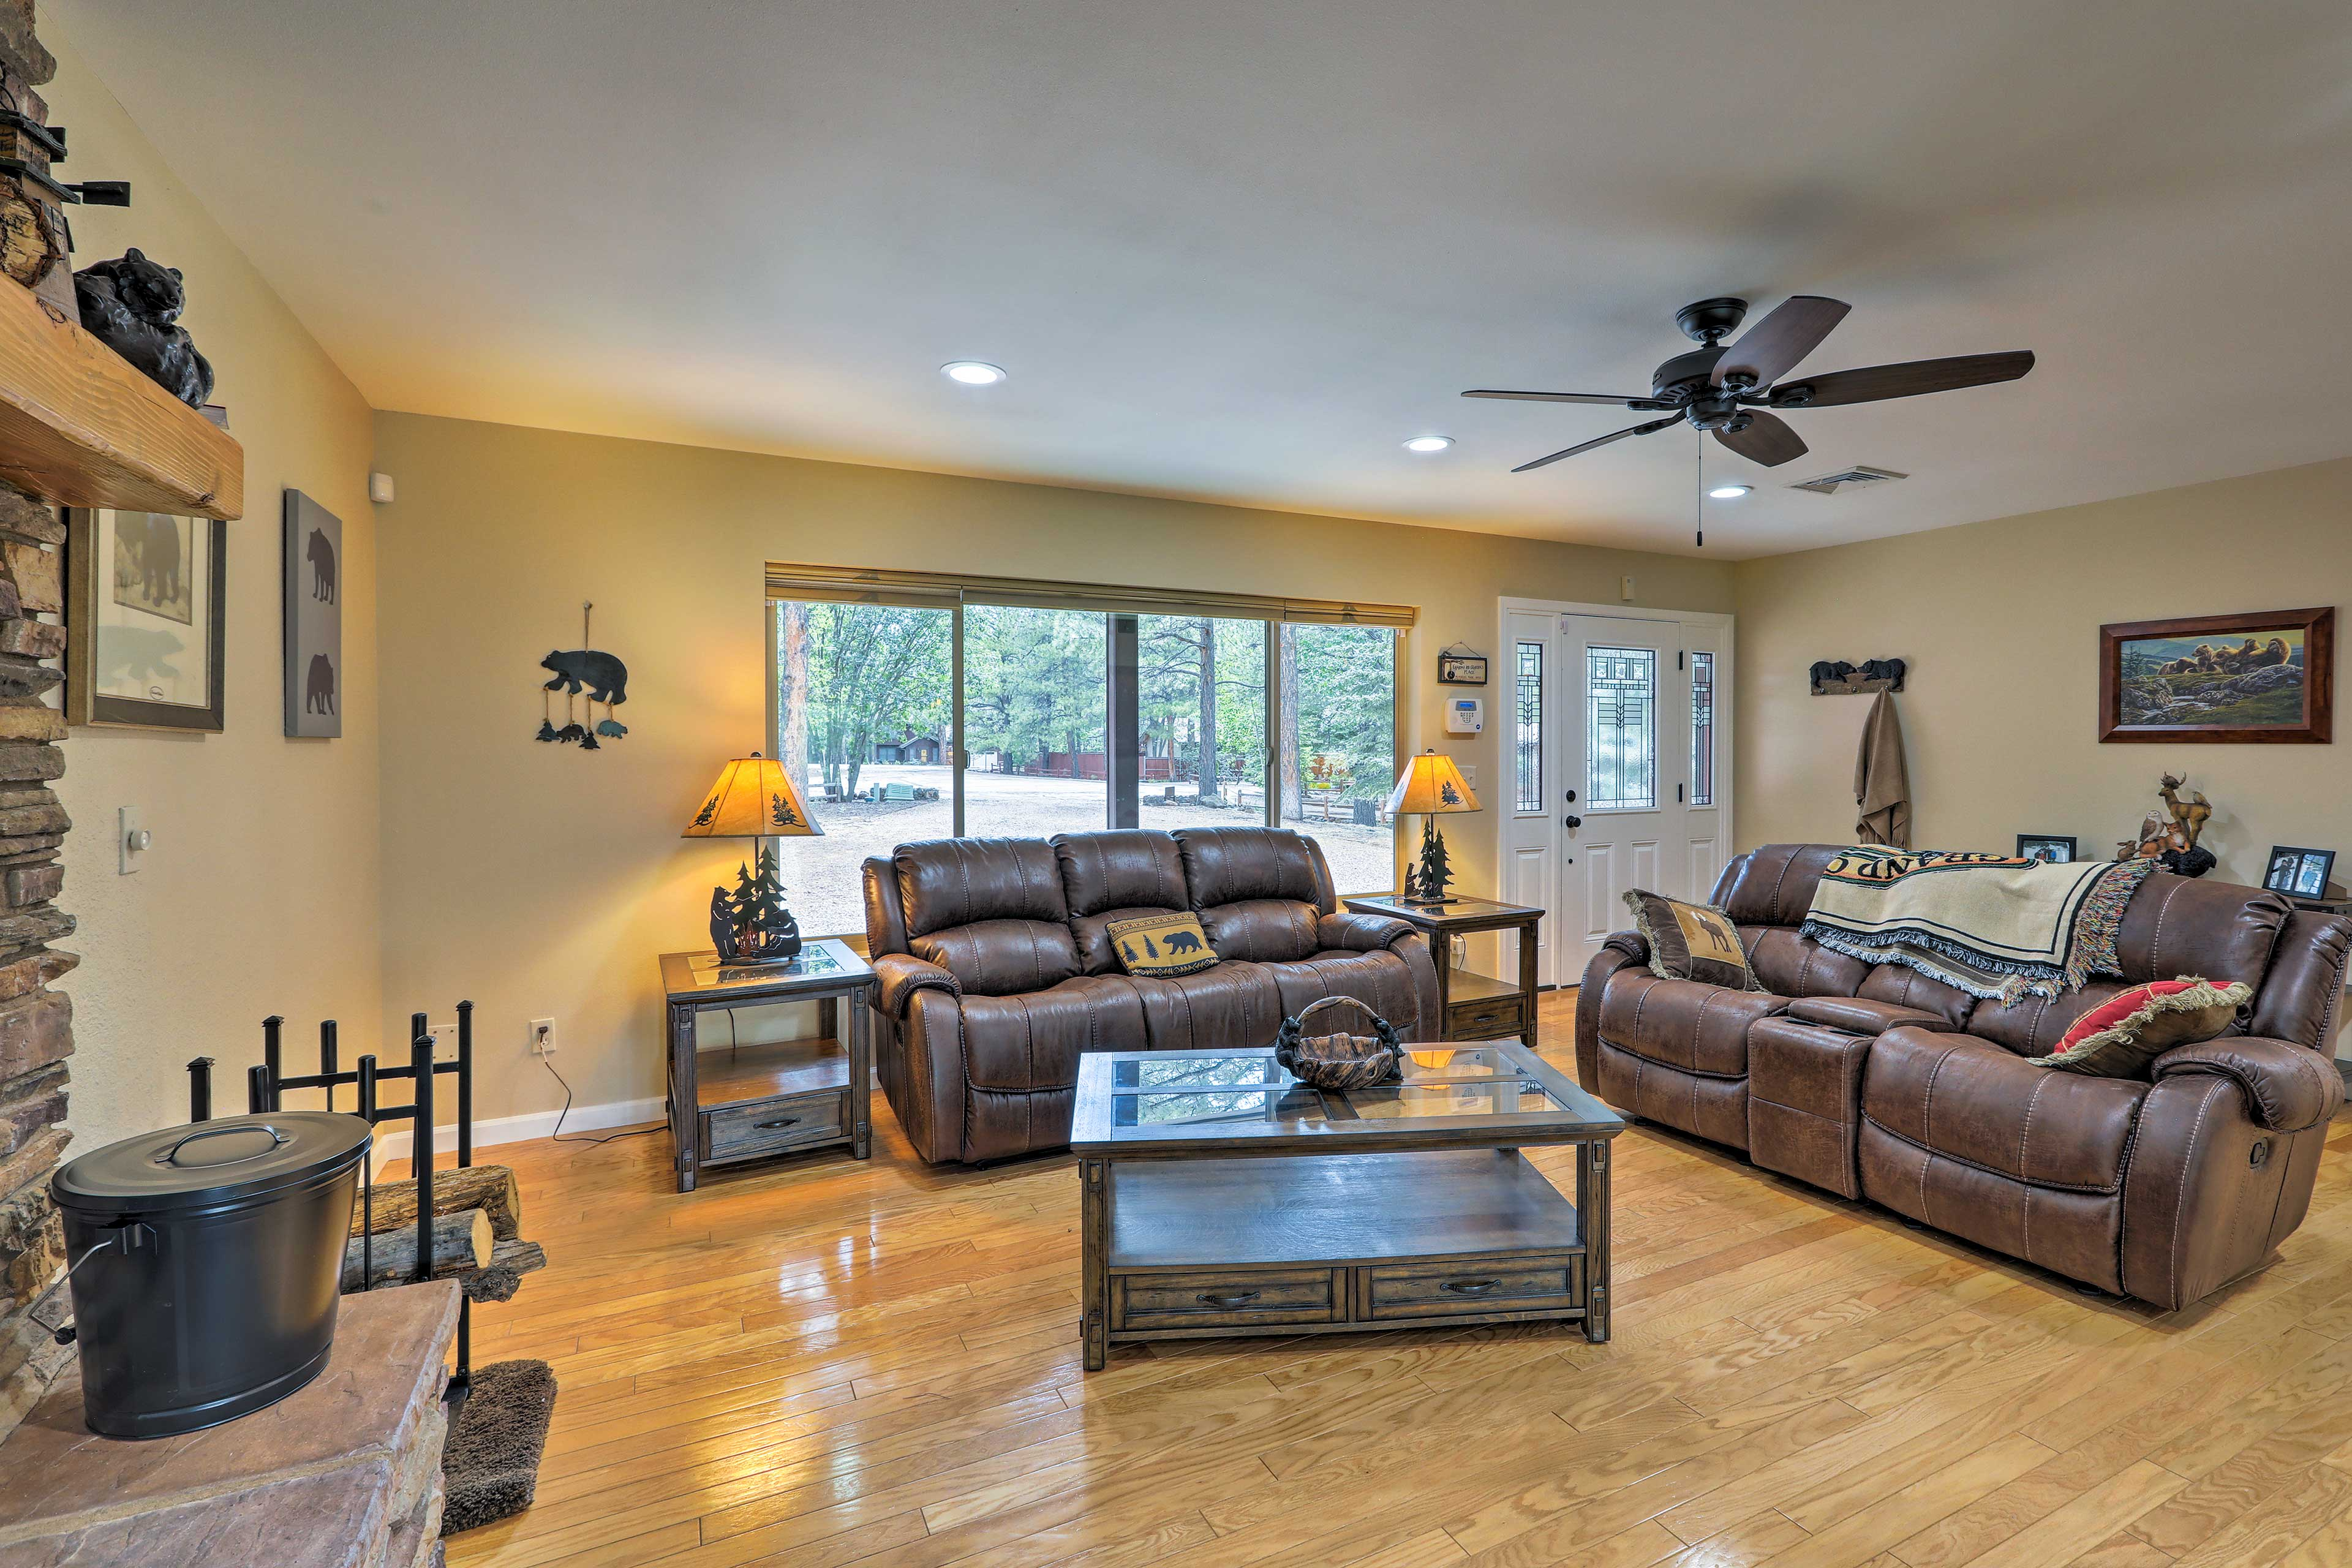 Walk to the golf course, restaurants, and equestrian center!